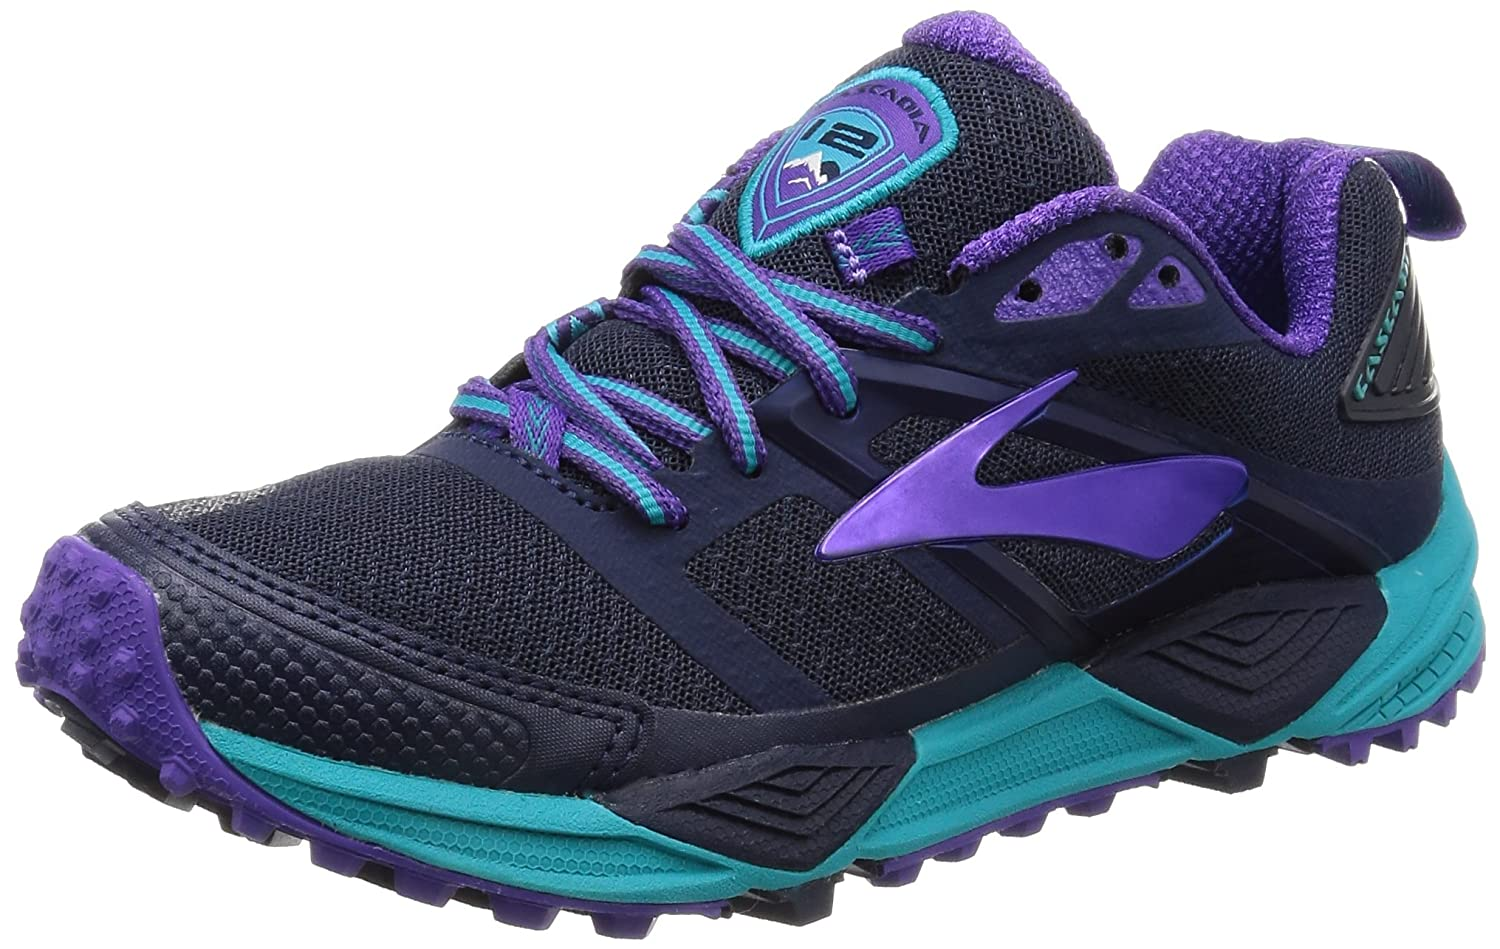 Brooks Womens Cascadia 12 B01GF86NMO 6.5 B(M) US|Peacoat/Passion Flower/Bluebird